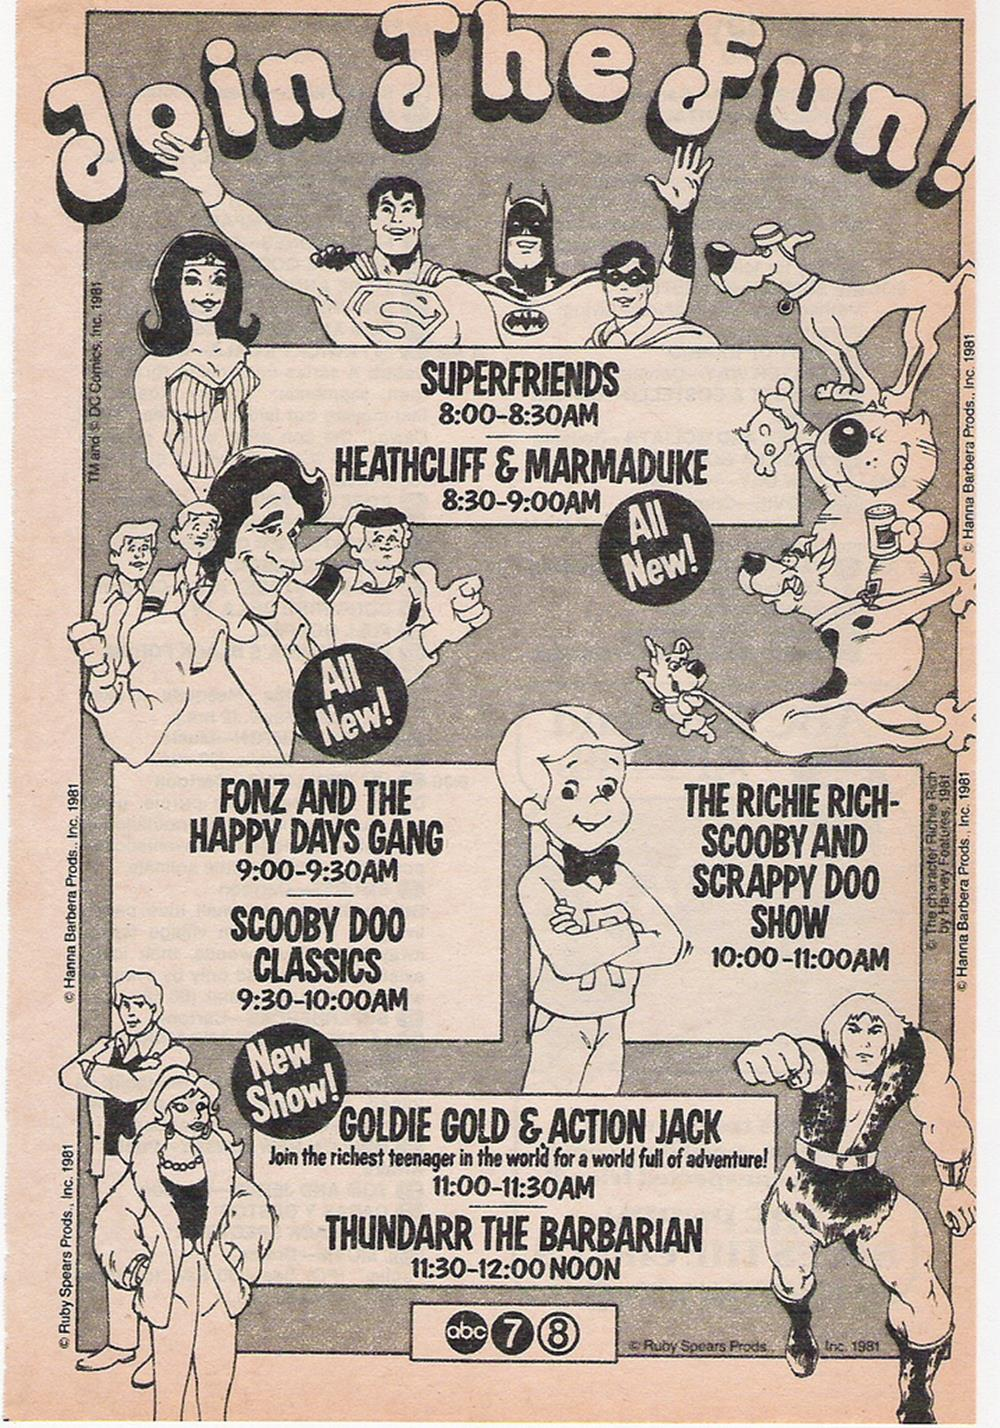 Saturday Morning Fever Podcast - ad 1981 ABC cartoons